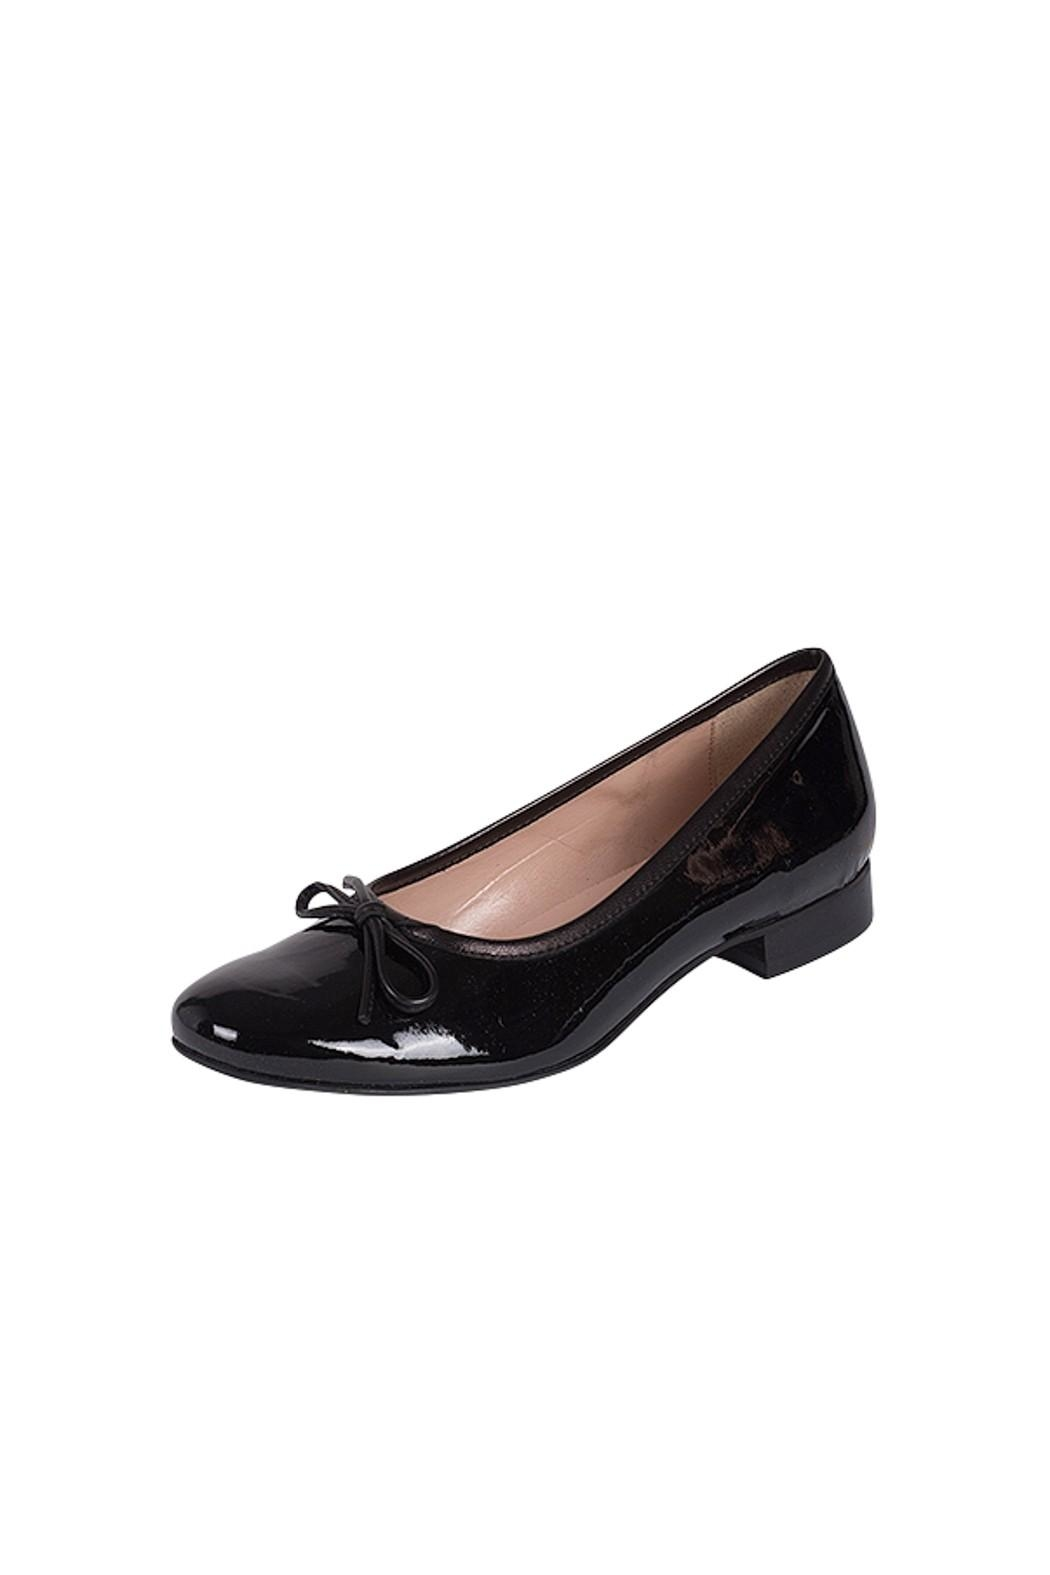 Pascucci Black Patent-Leather Ballerina - Front Full Image